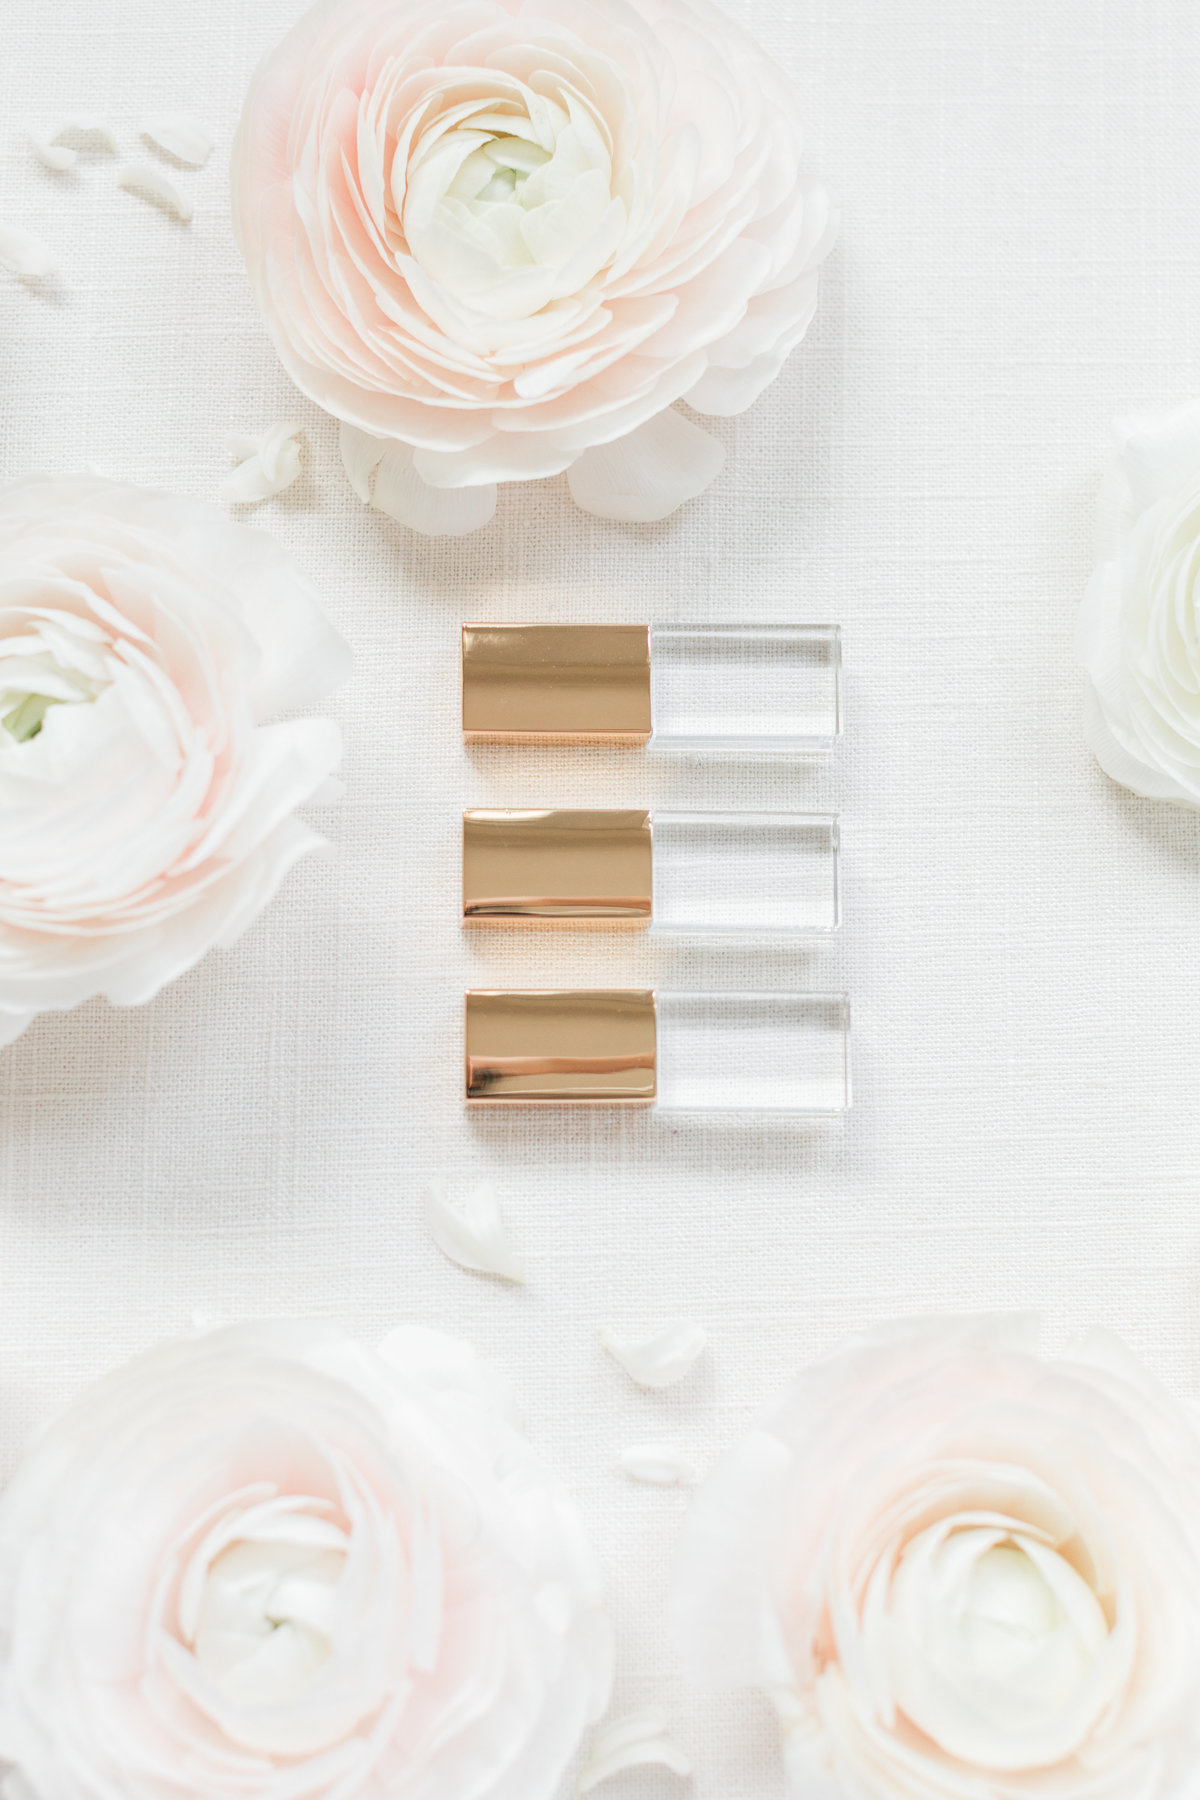 Gold Crystal USBs with flowers